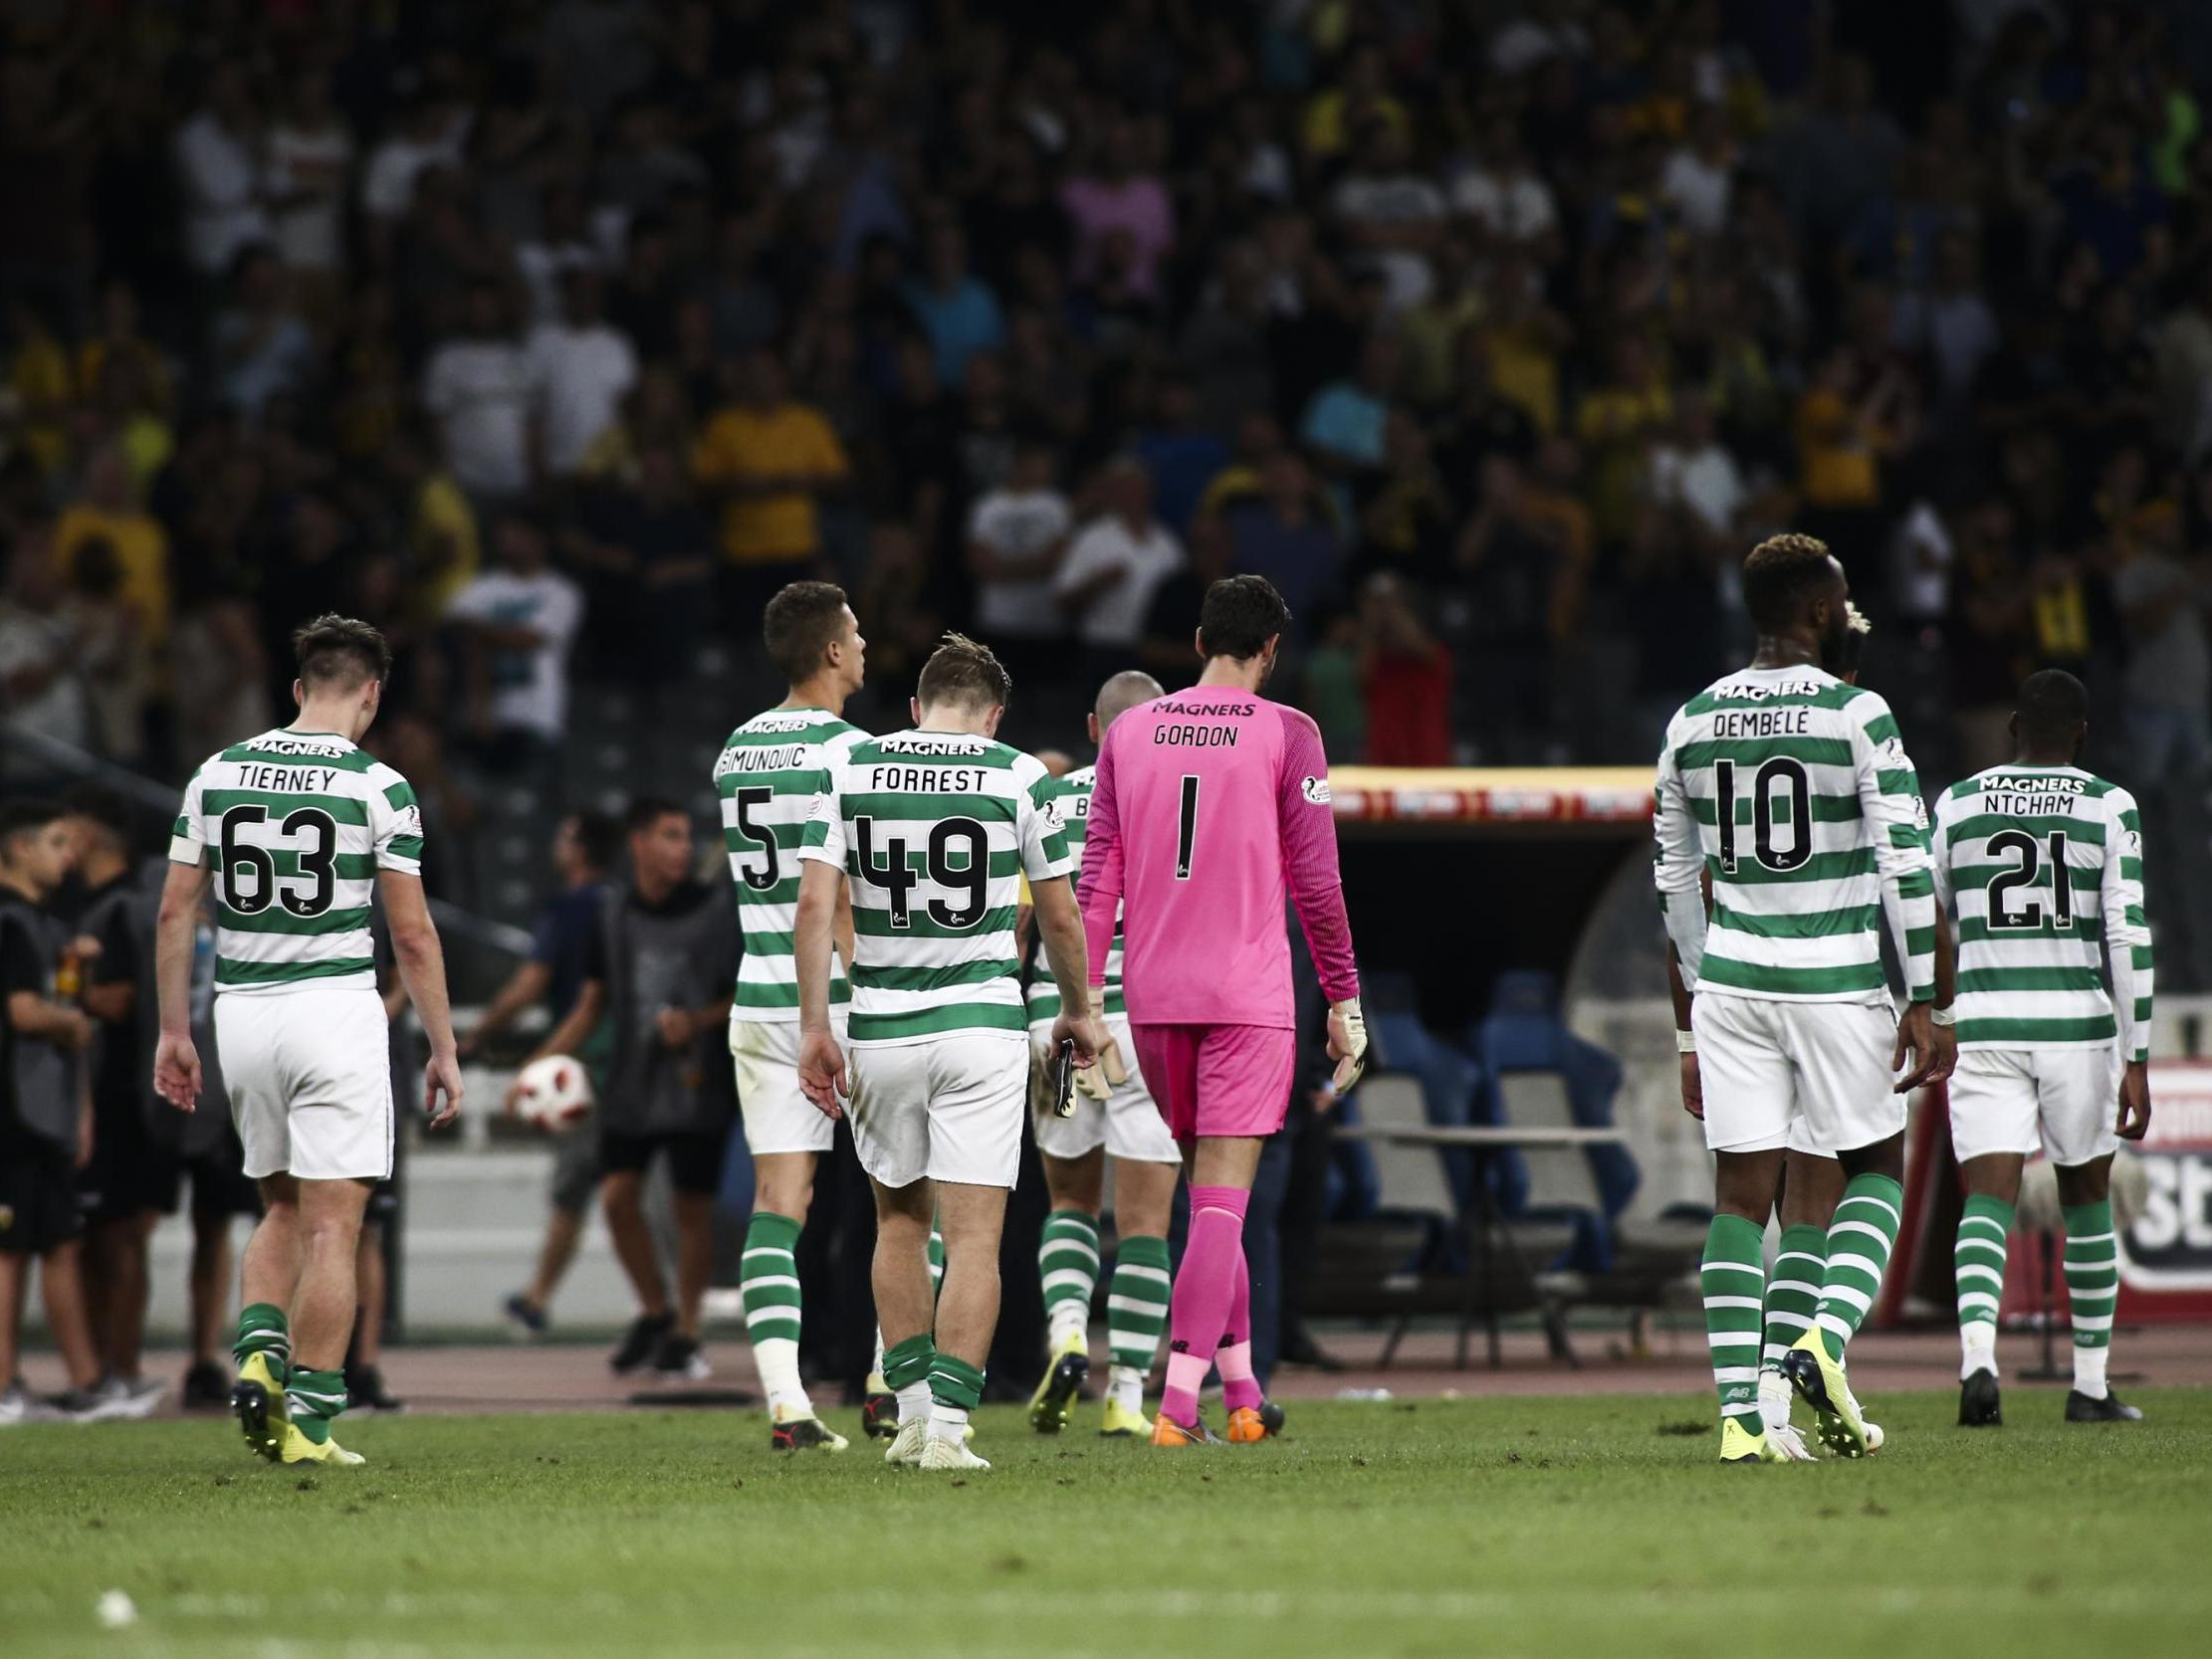 Celtic's Champions League hopes dashed after defeat by AEK Athens